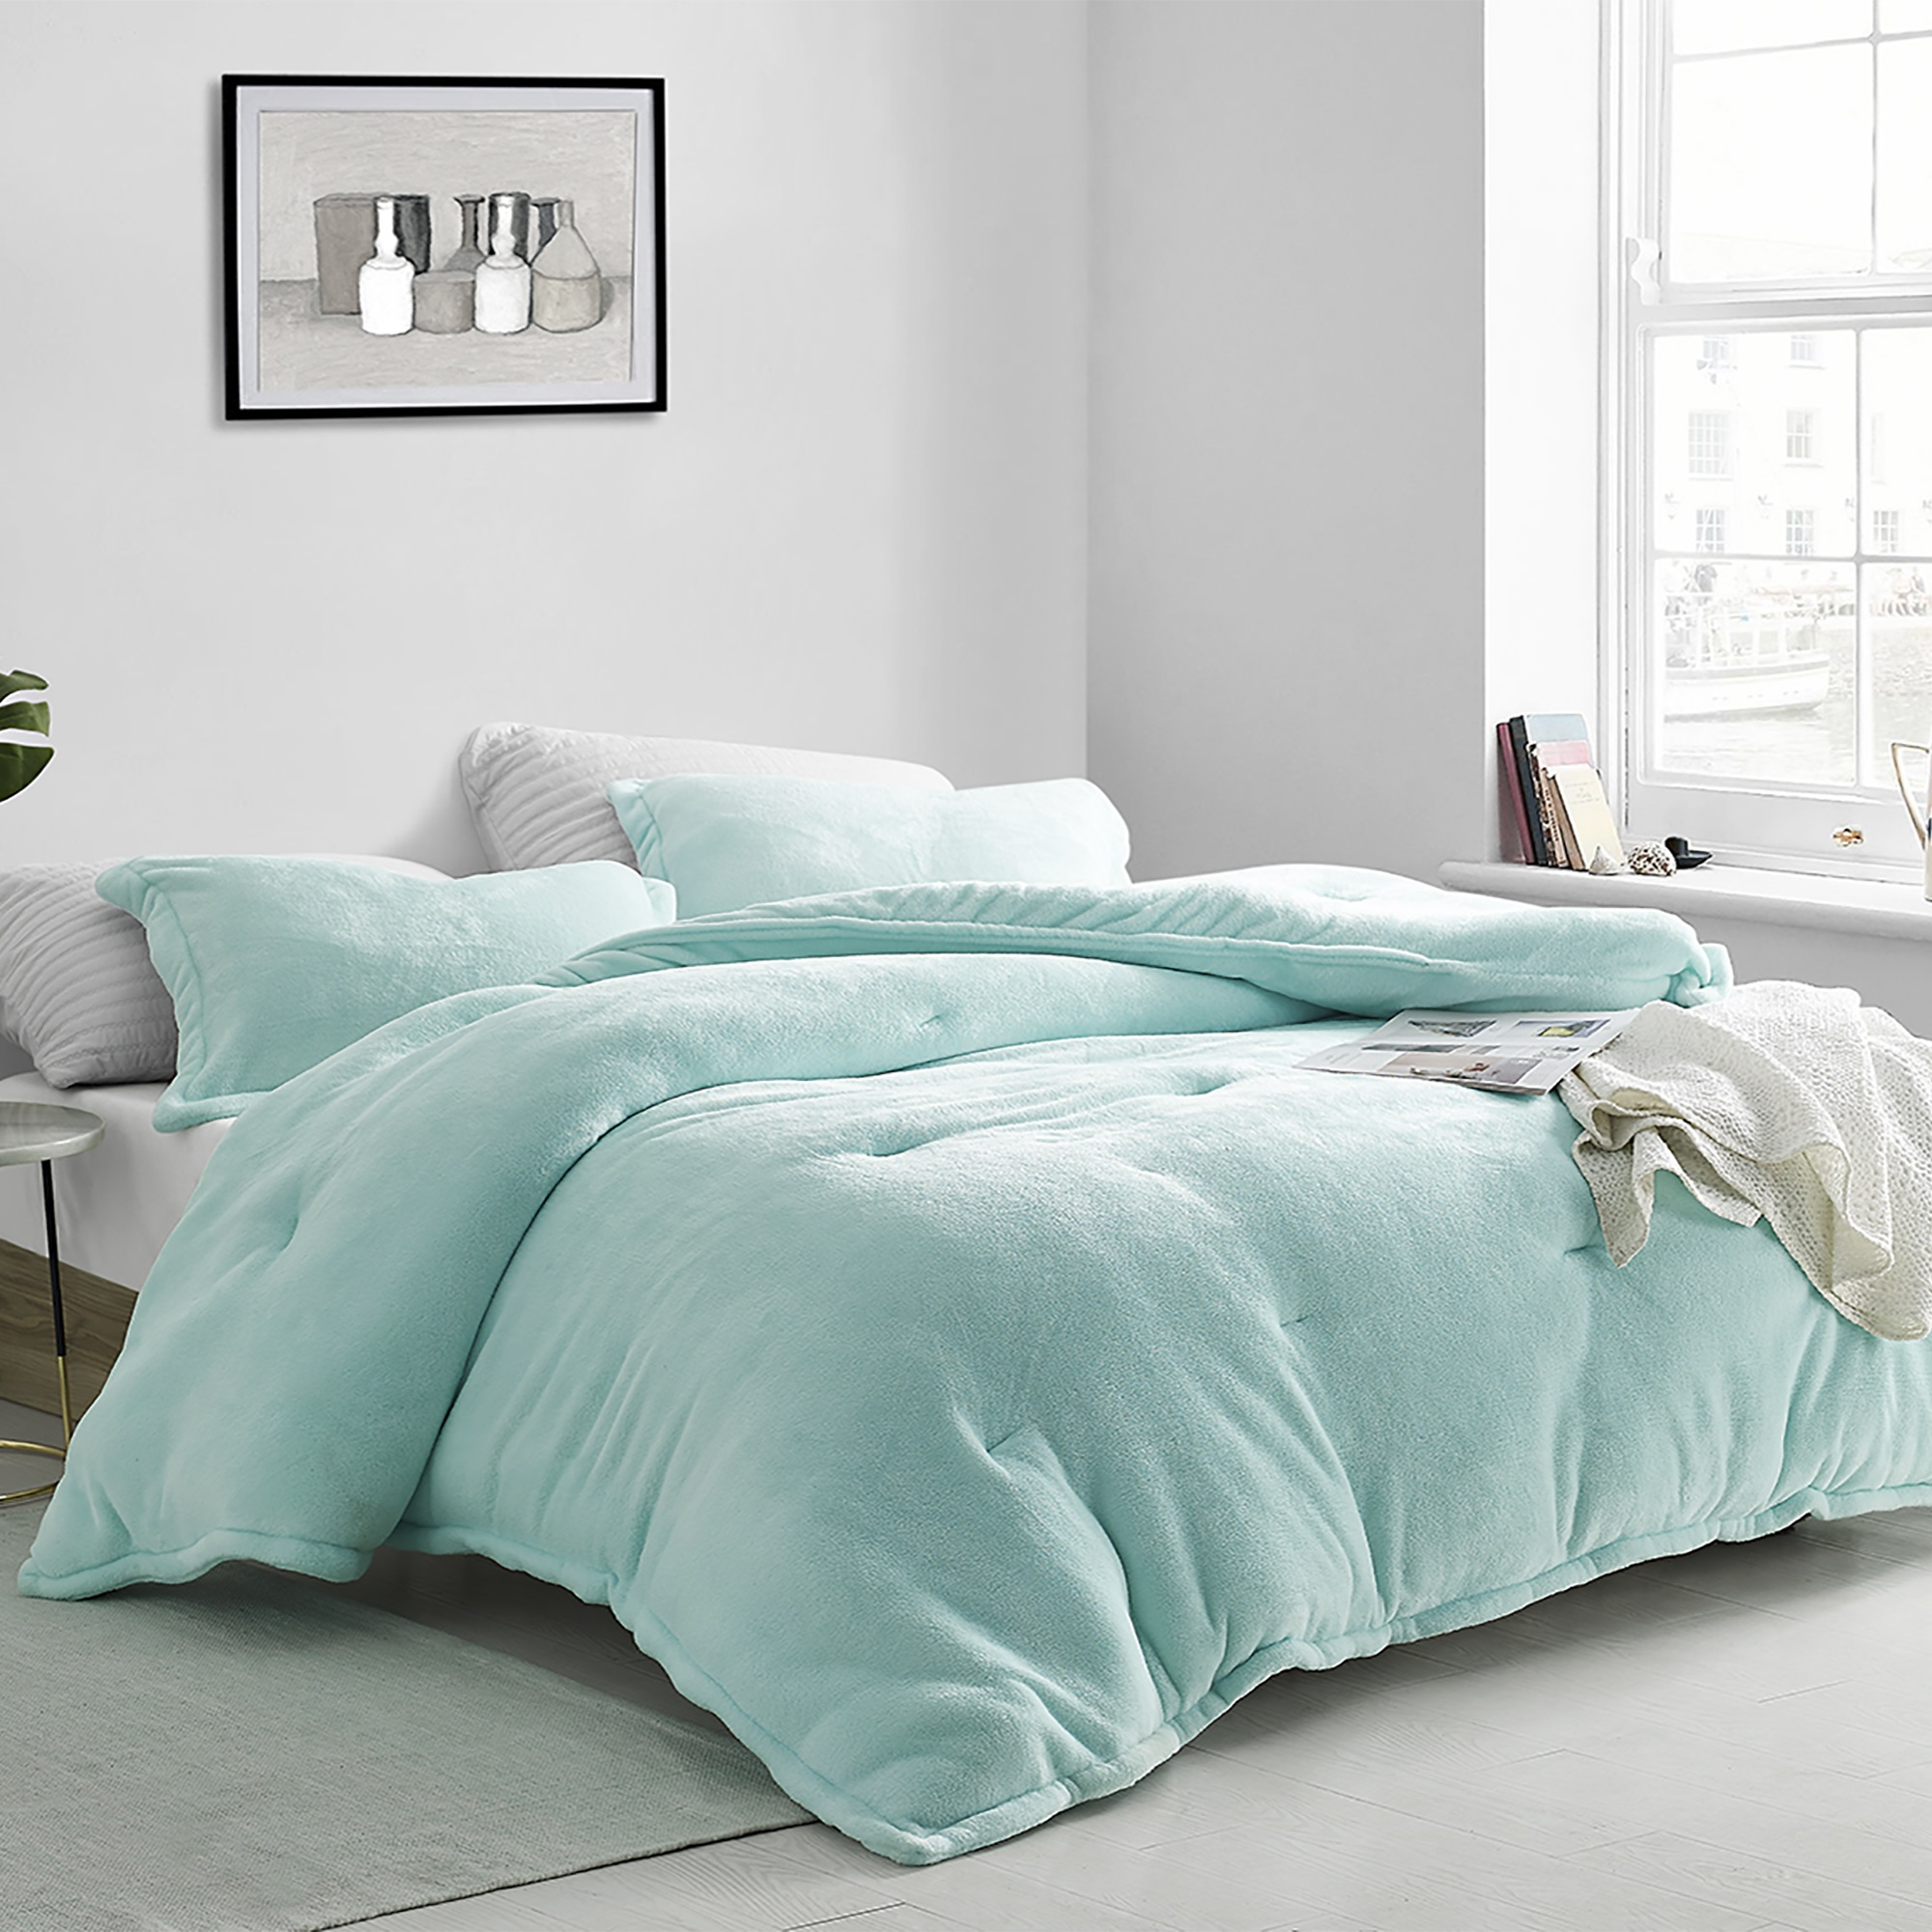 Coma Inducer® Oversized Comforter - Touchy Feely - Aruba